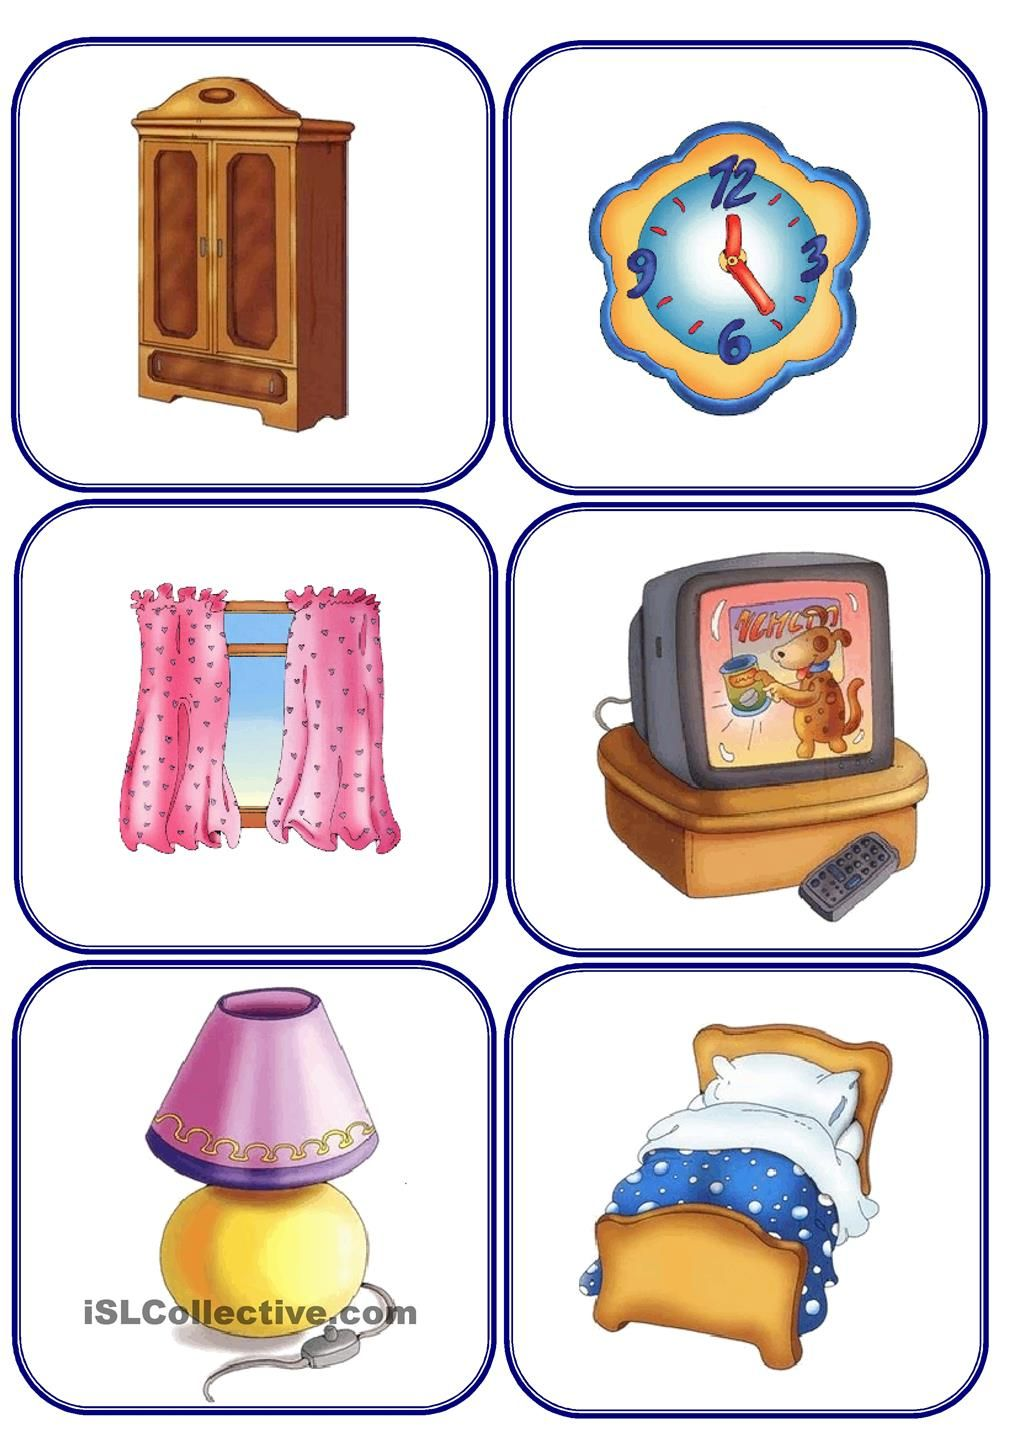 House Of Appliances Furniture And Parts Of The House Flashcards Furnitureappliances